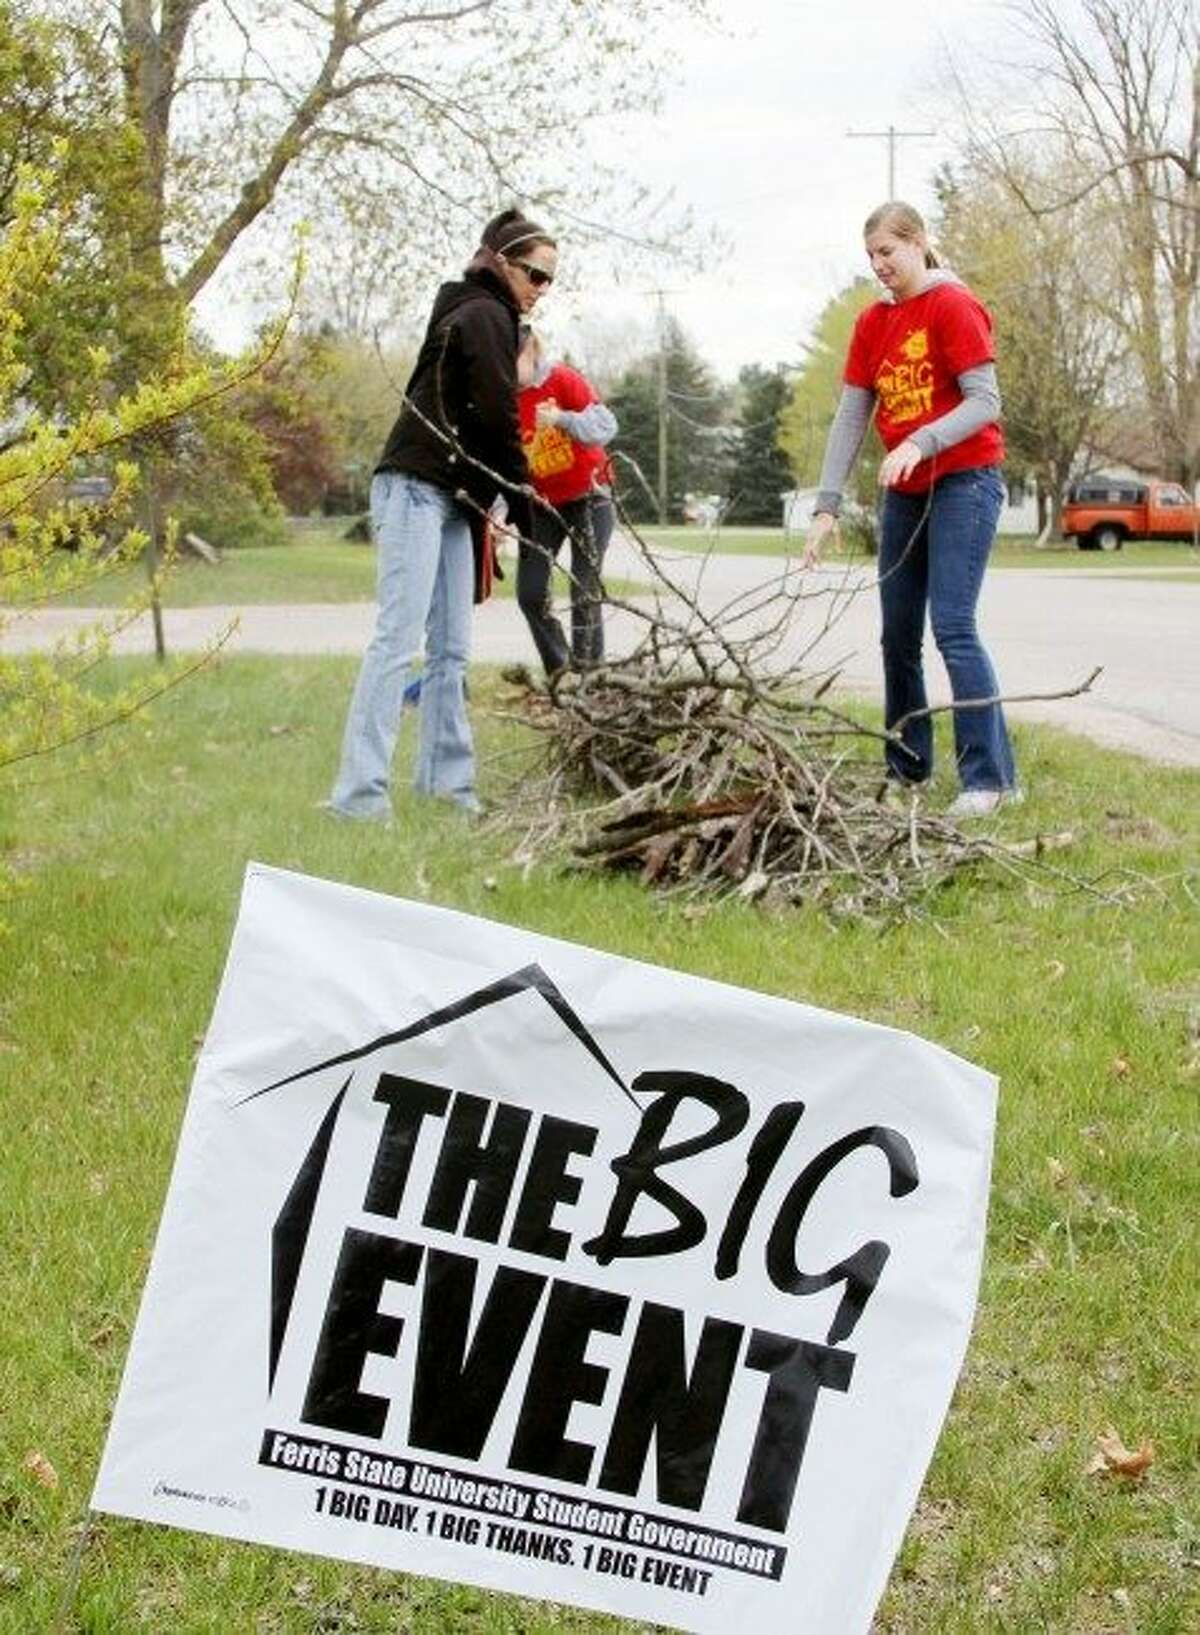 Volunteers, who are not identified, are pictured participating in The Big Event, put on by Ferris State University. (Pioneer file photo)